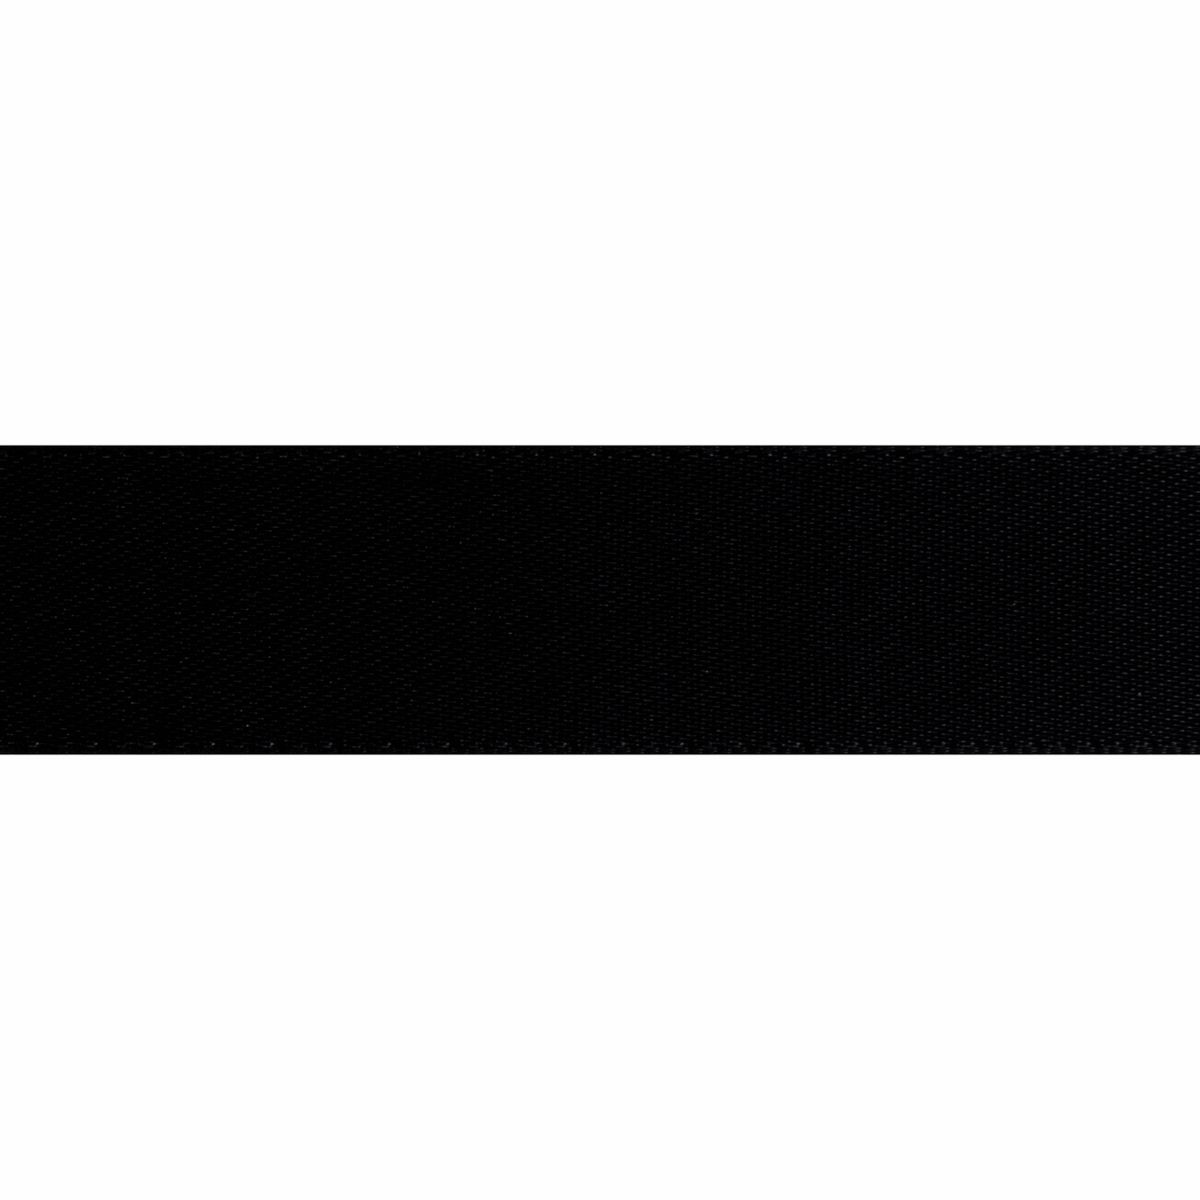 Black Double Satin Ribbon 5m rolls from 3mm to 36mm wide